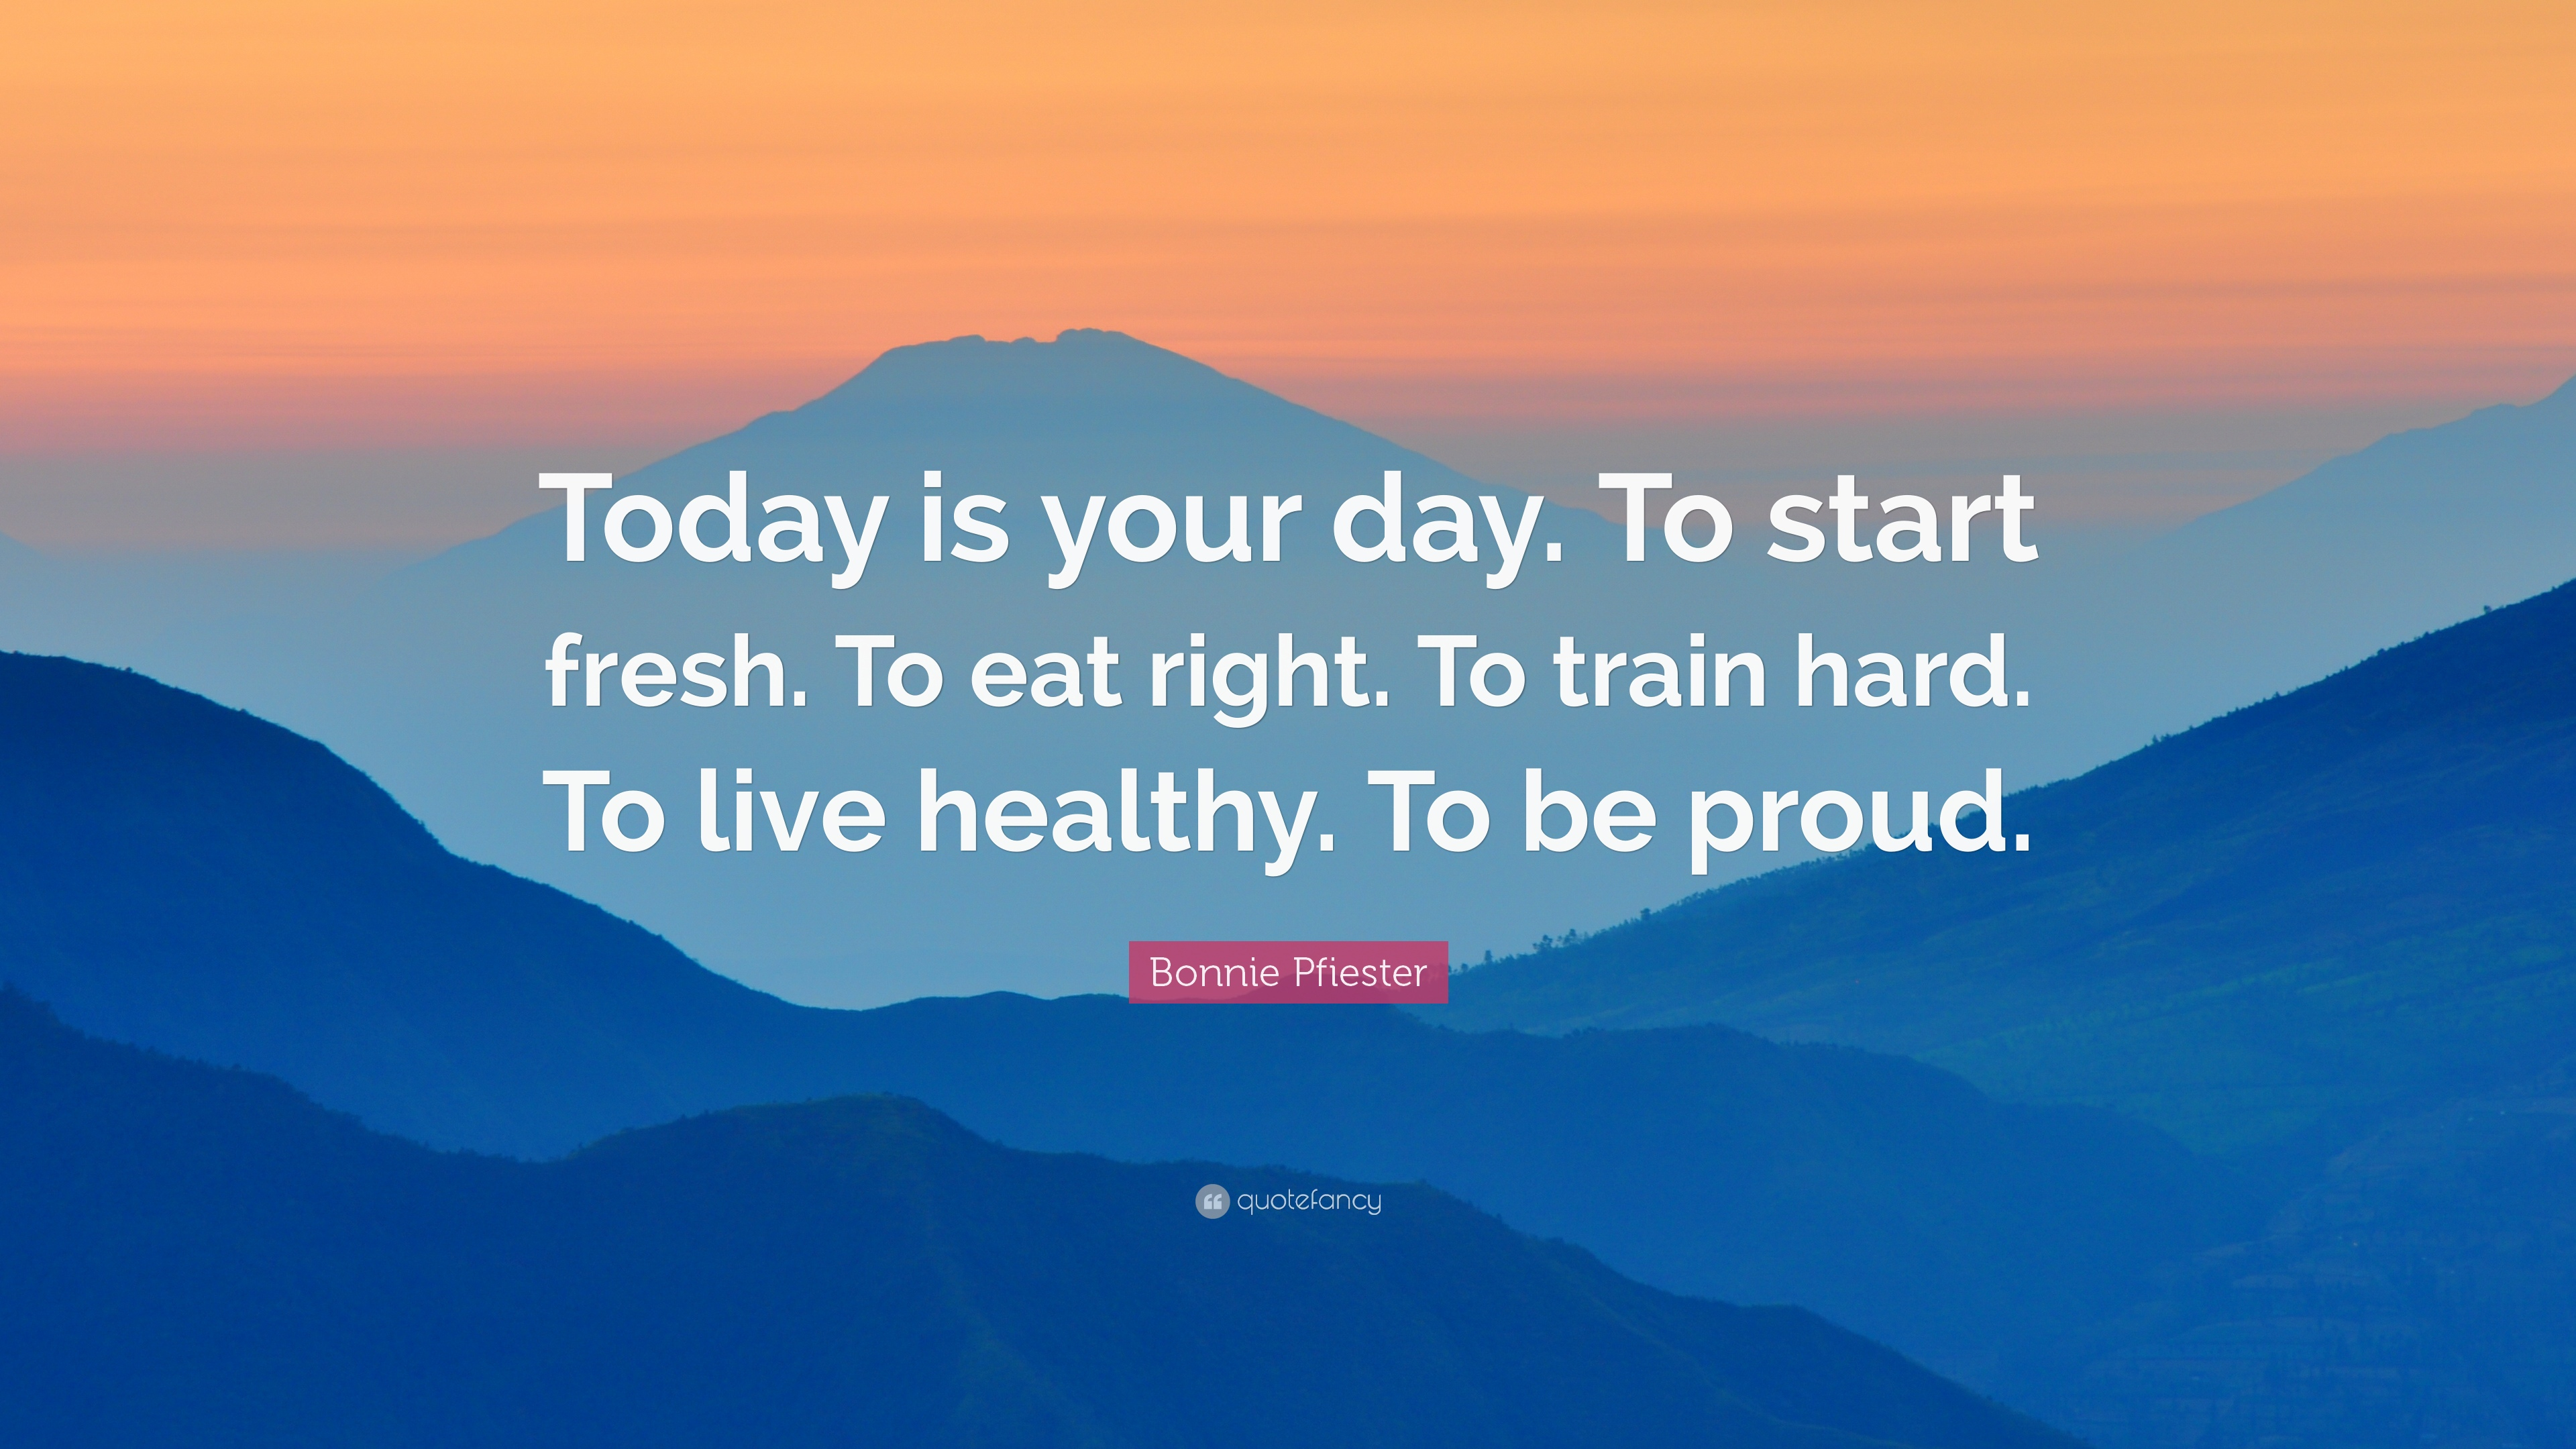 Casey Neistat Quotes Wallpaper Bonnie Pfiester Quote Today Is Your Day To Start Fresh